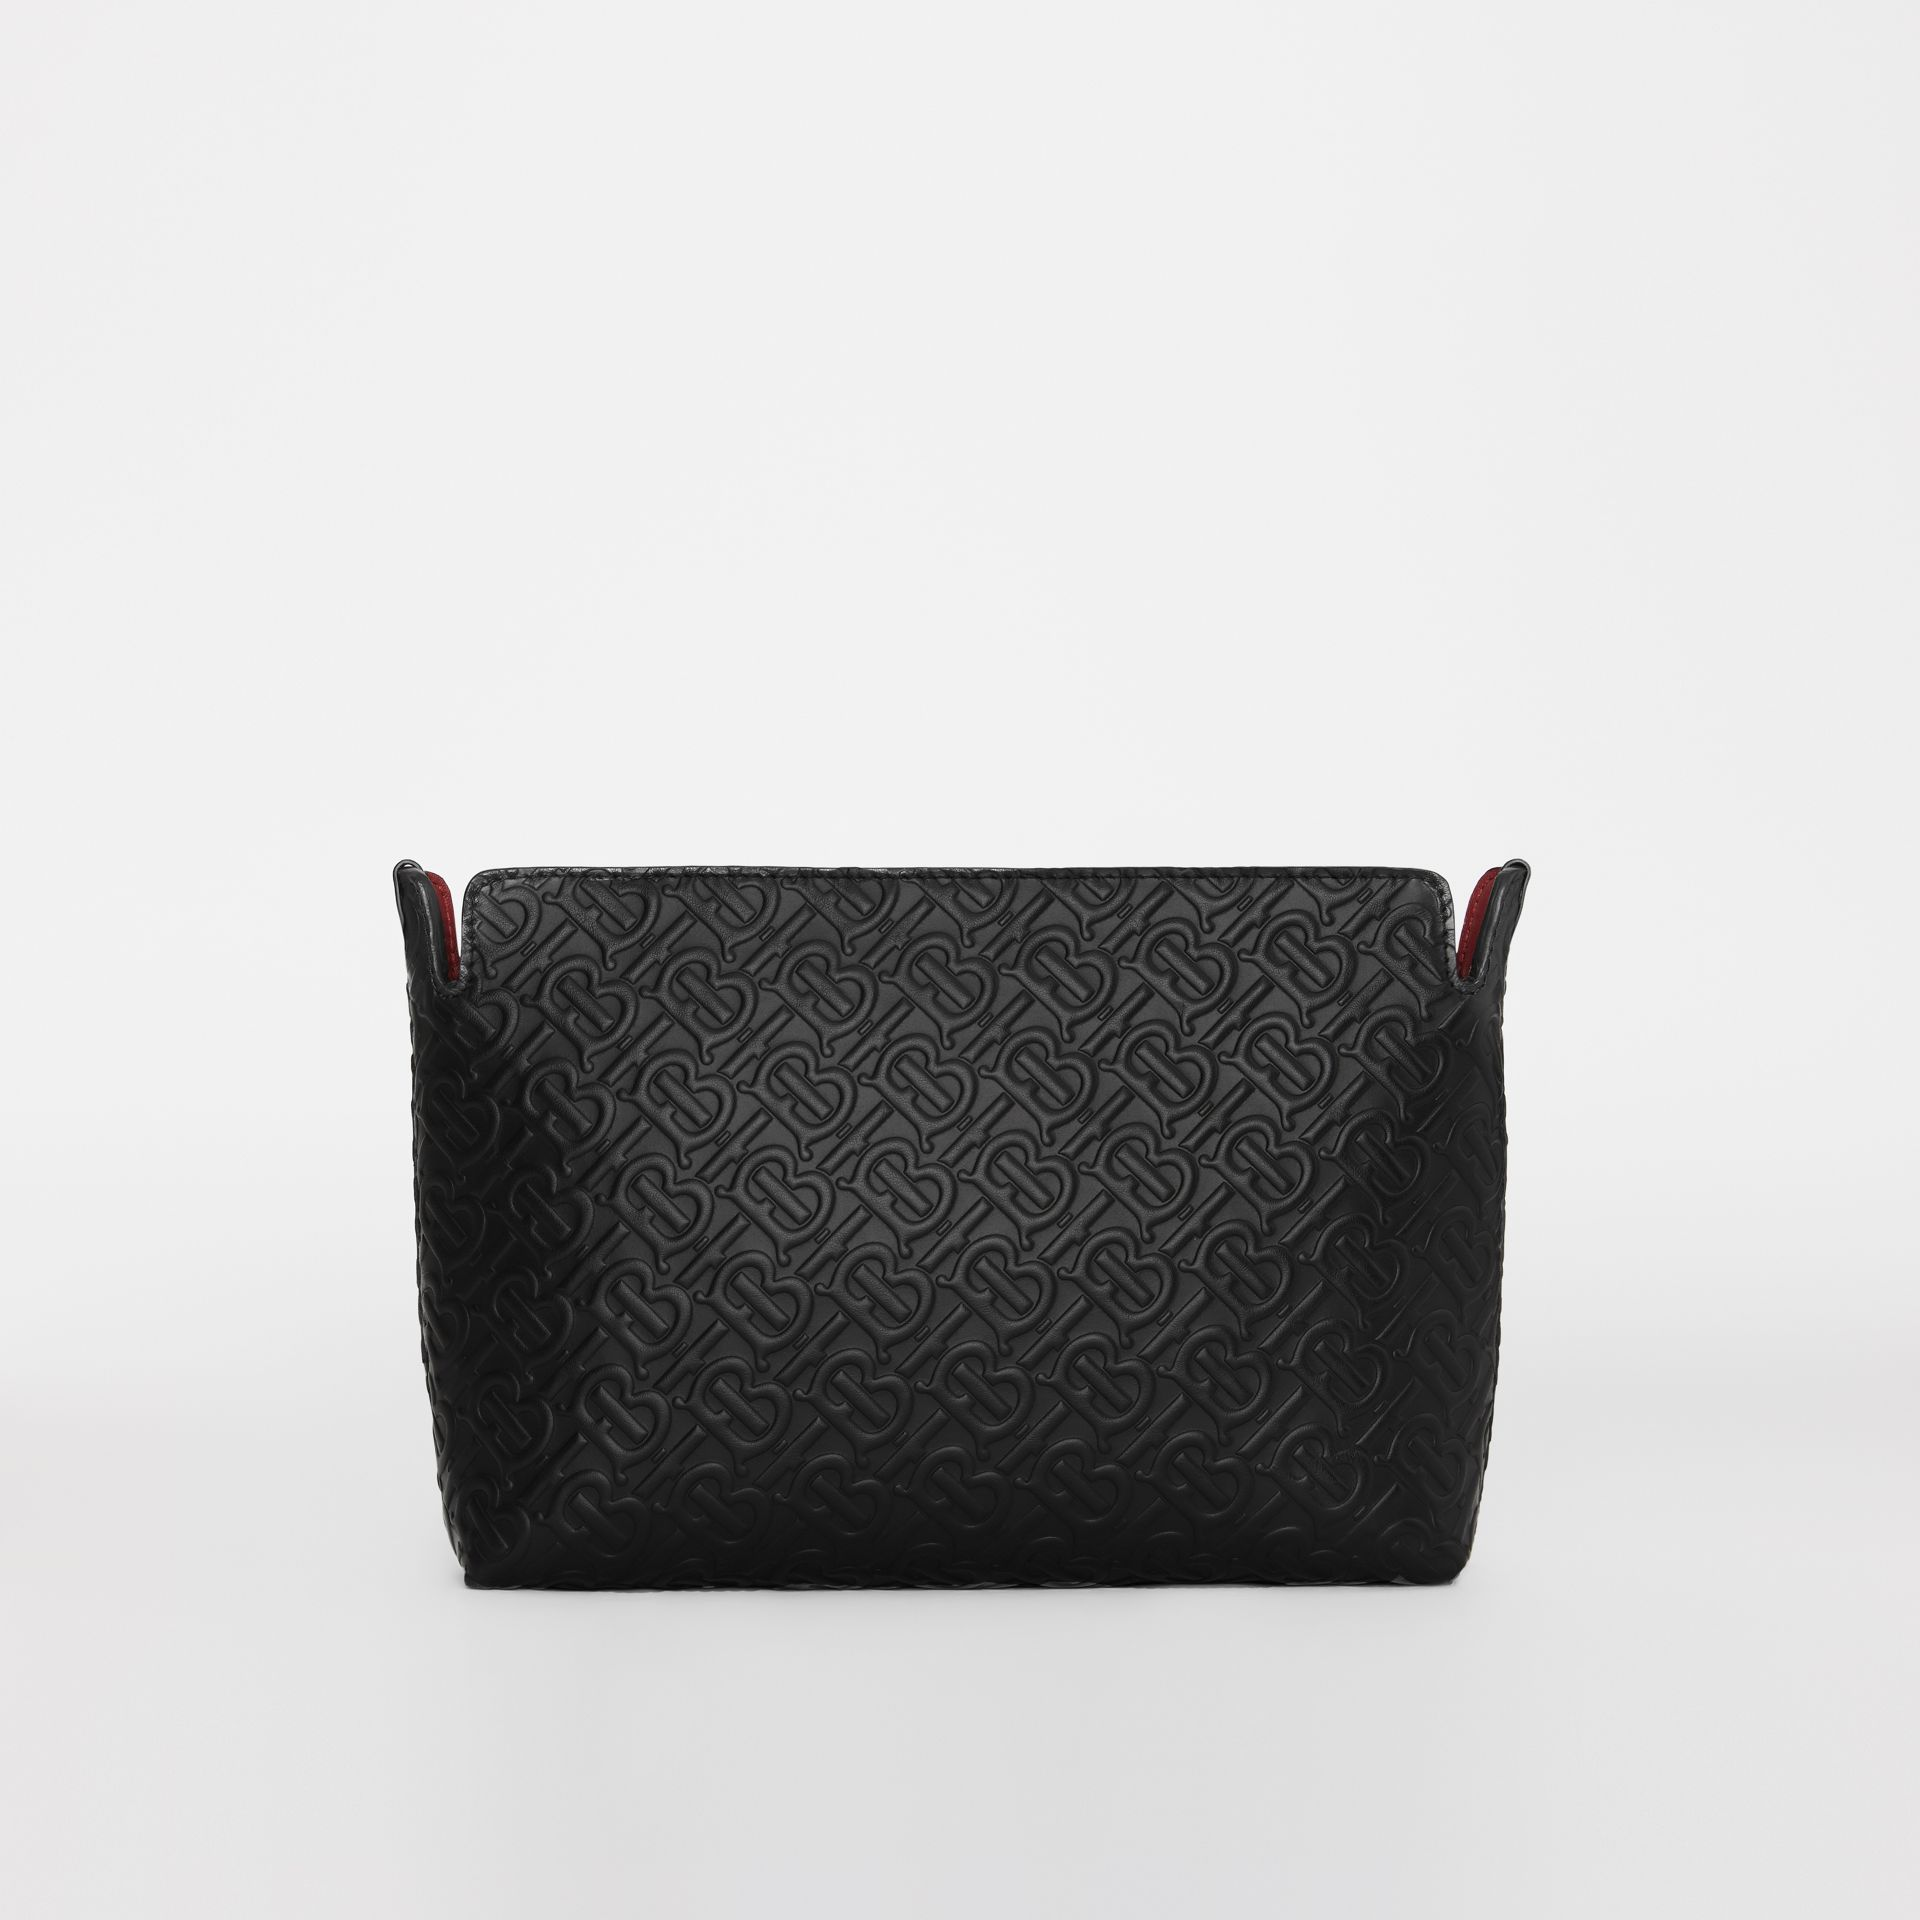 Medium Monogram Leather Clutch in Black - Women | Burberry - gallery image 6